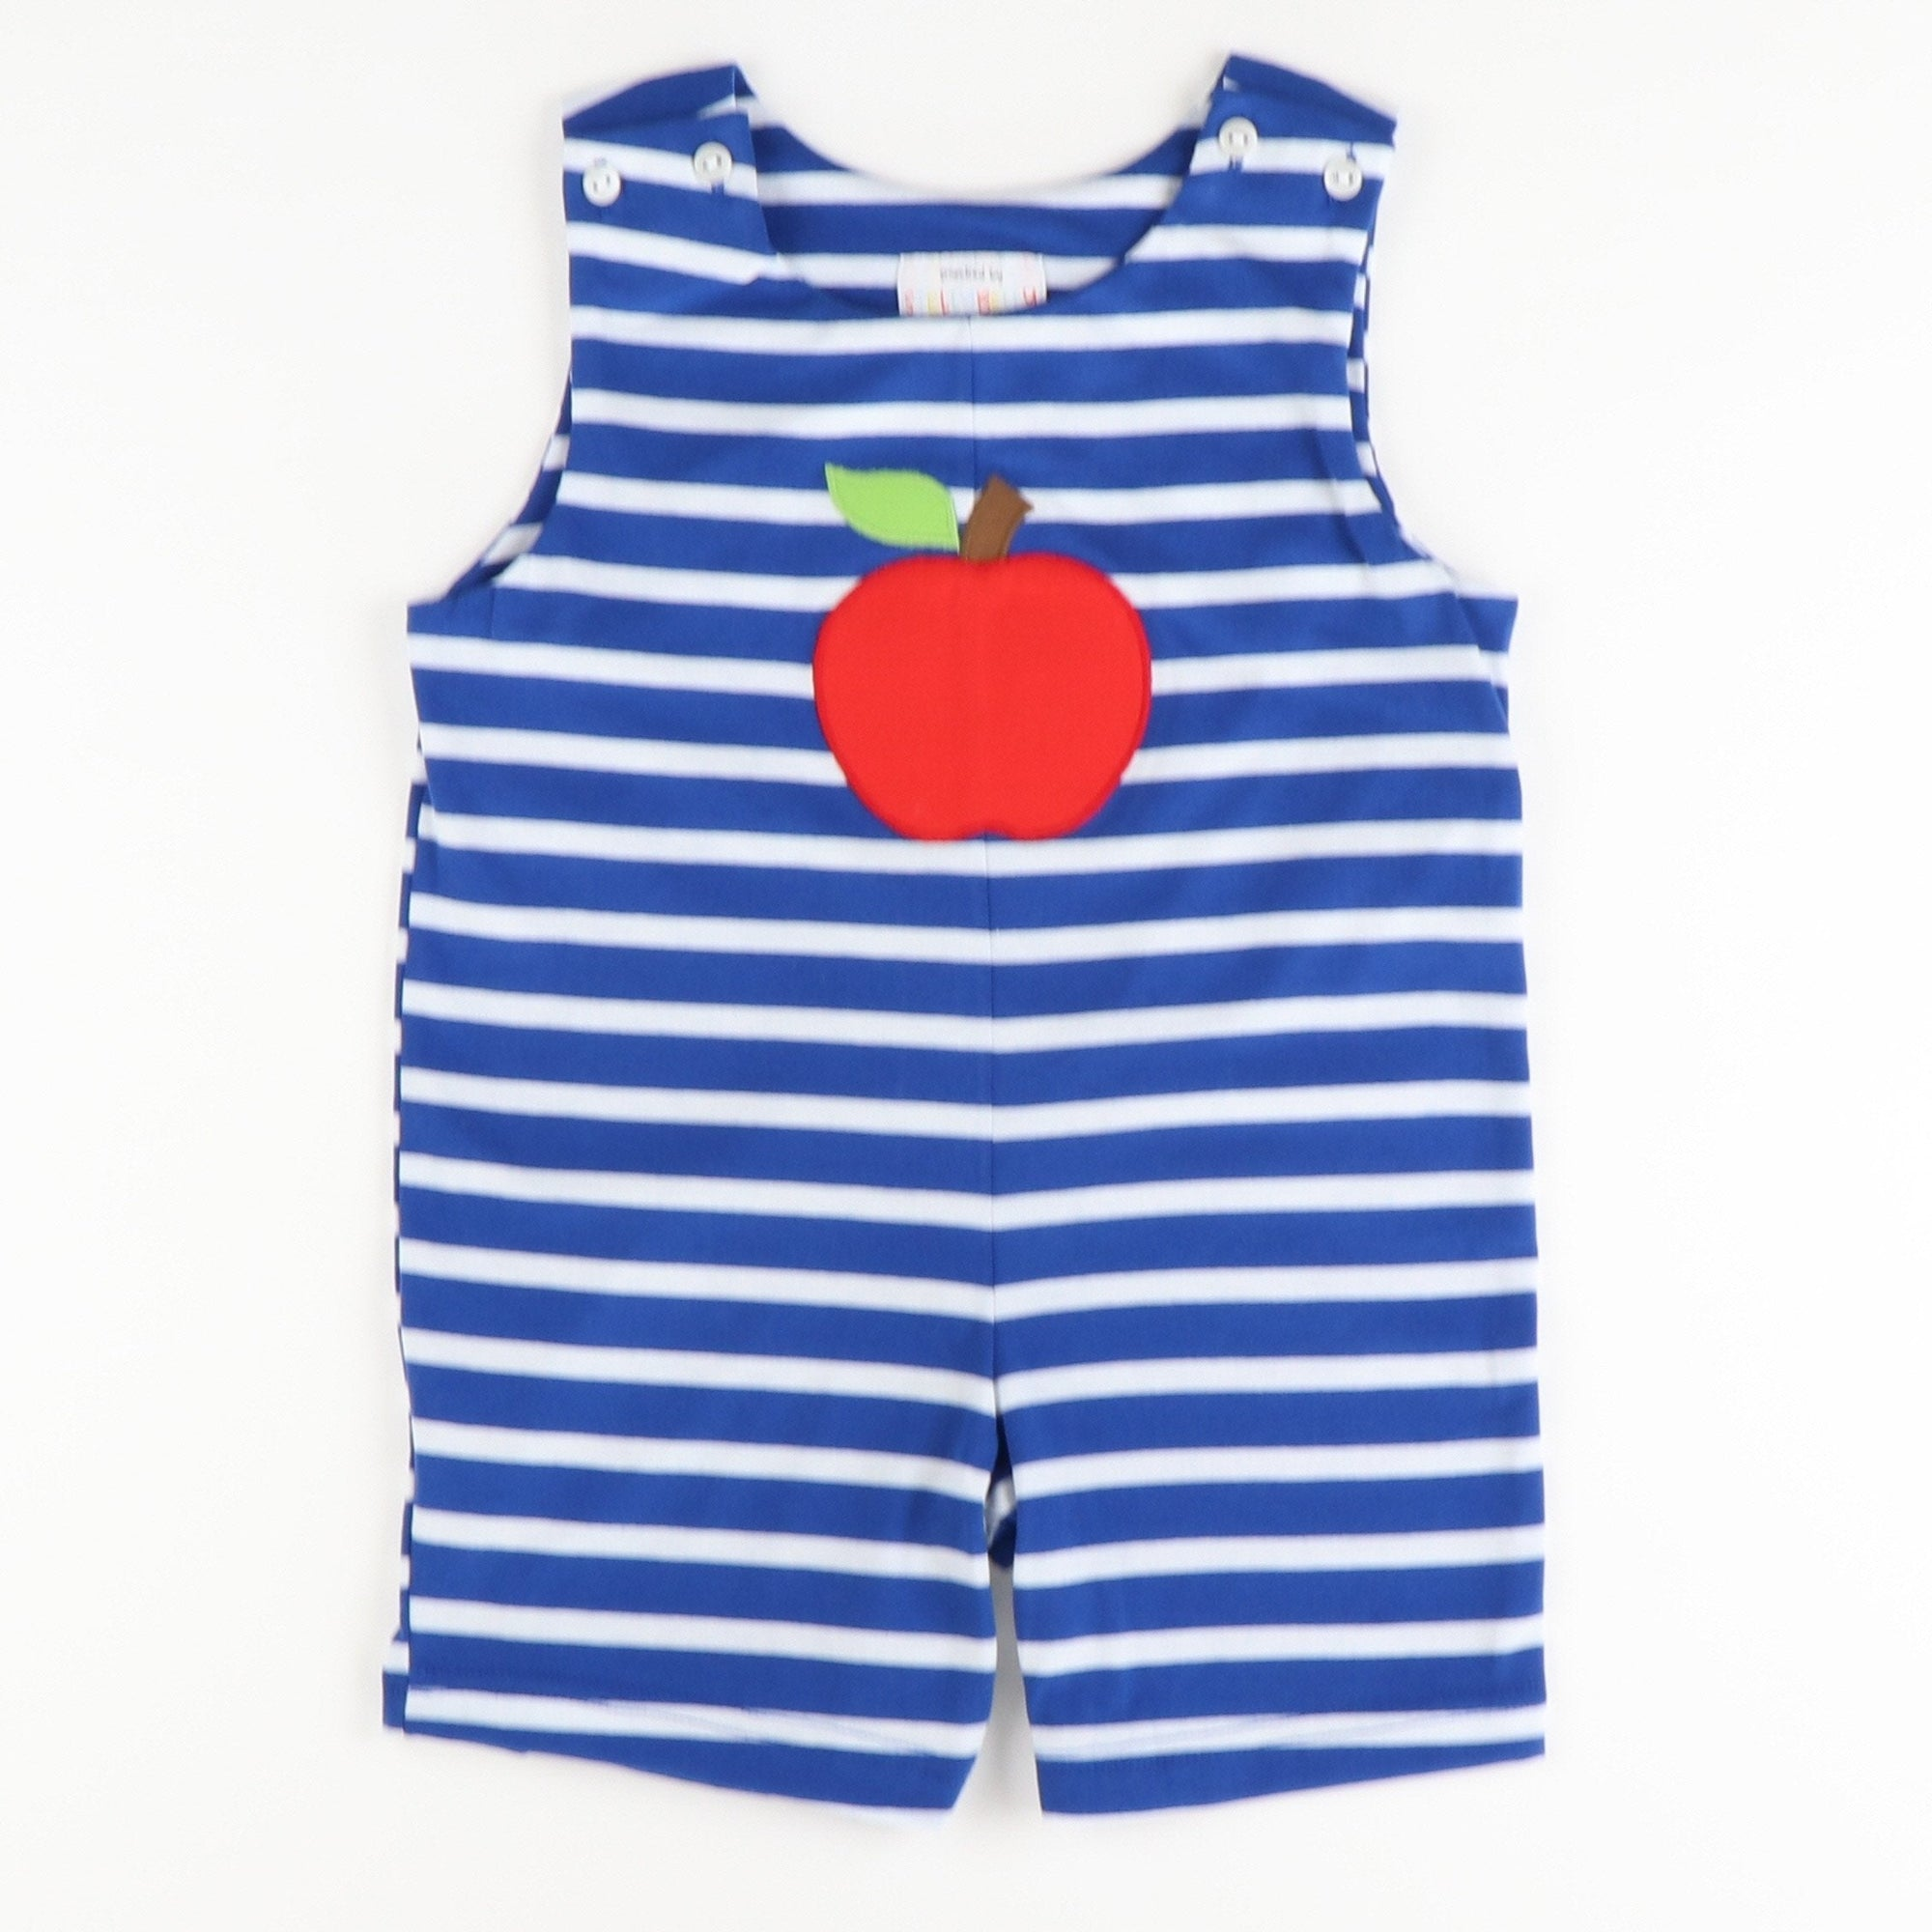 Appliquéd Apple Shortall - Royal Blue Stripe Knit - Stellybelly ?id=28062119493711